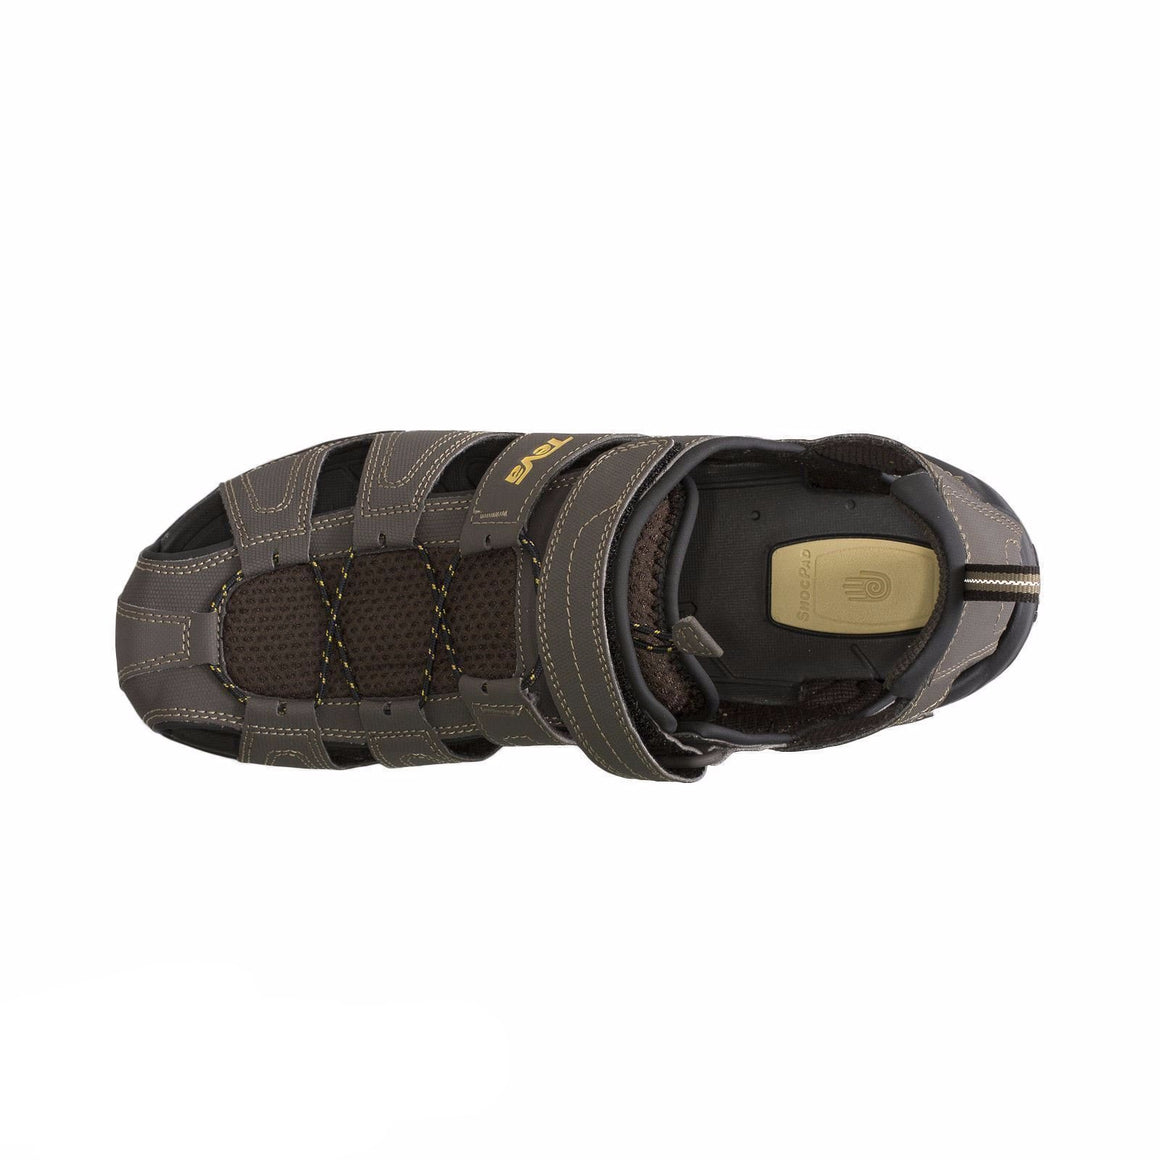 Teva Forebay Turkish Coffee Sandals